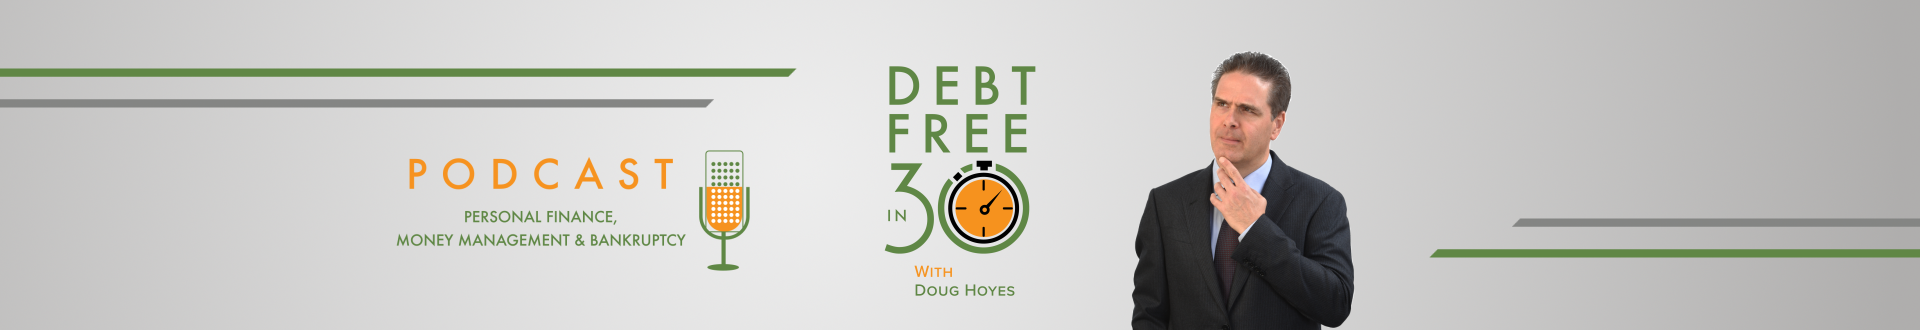 Debt Free in 30 Podcast Archive - Page 1